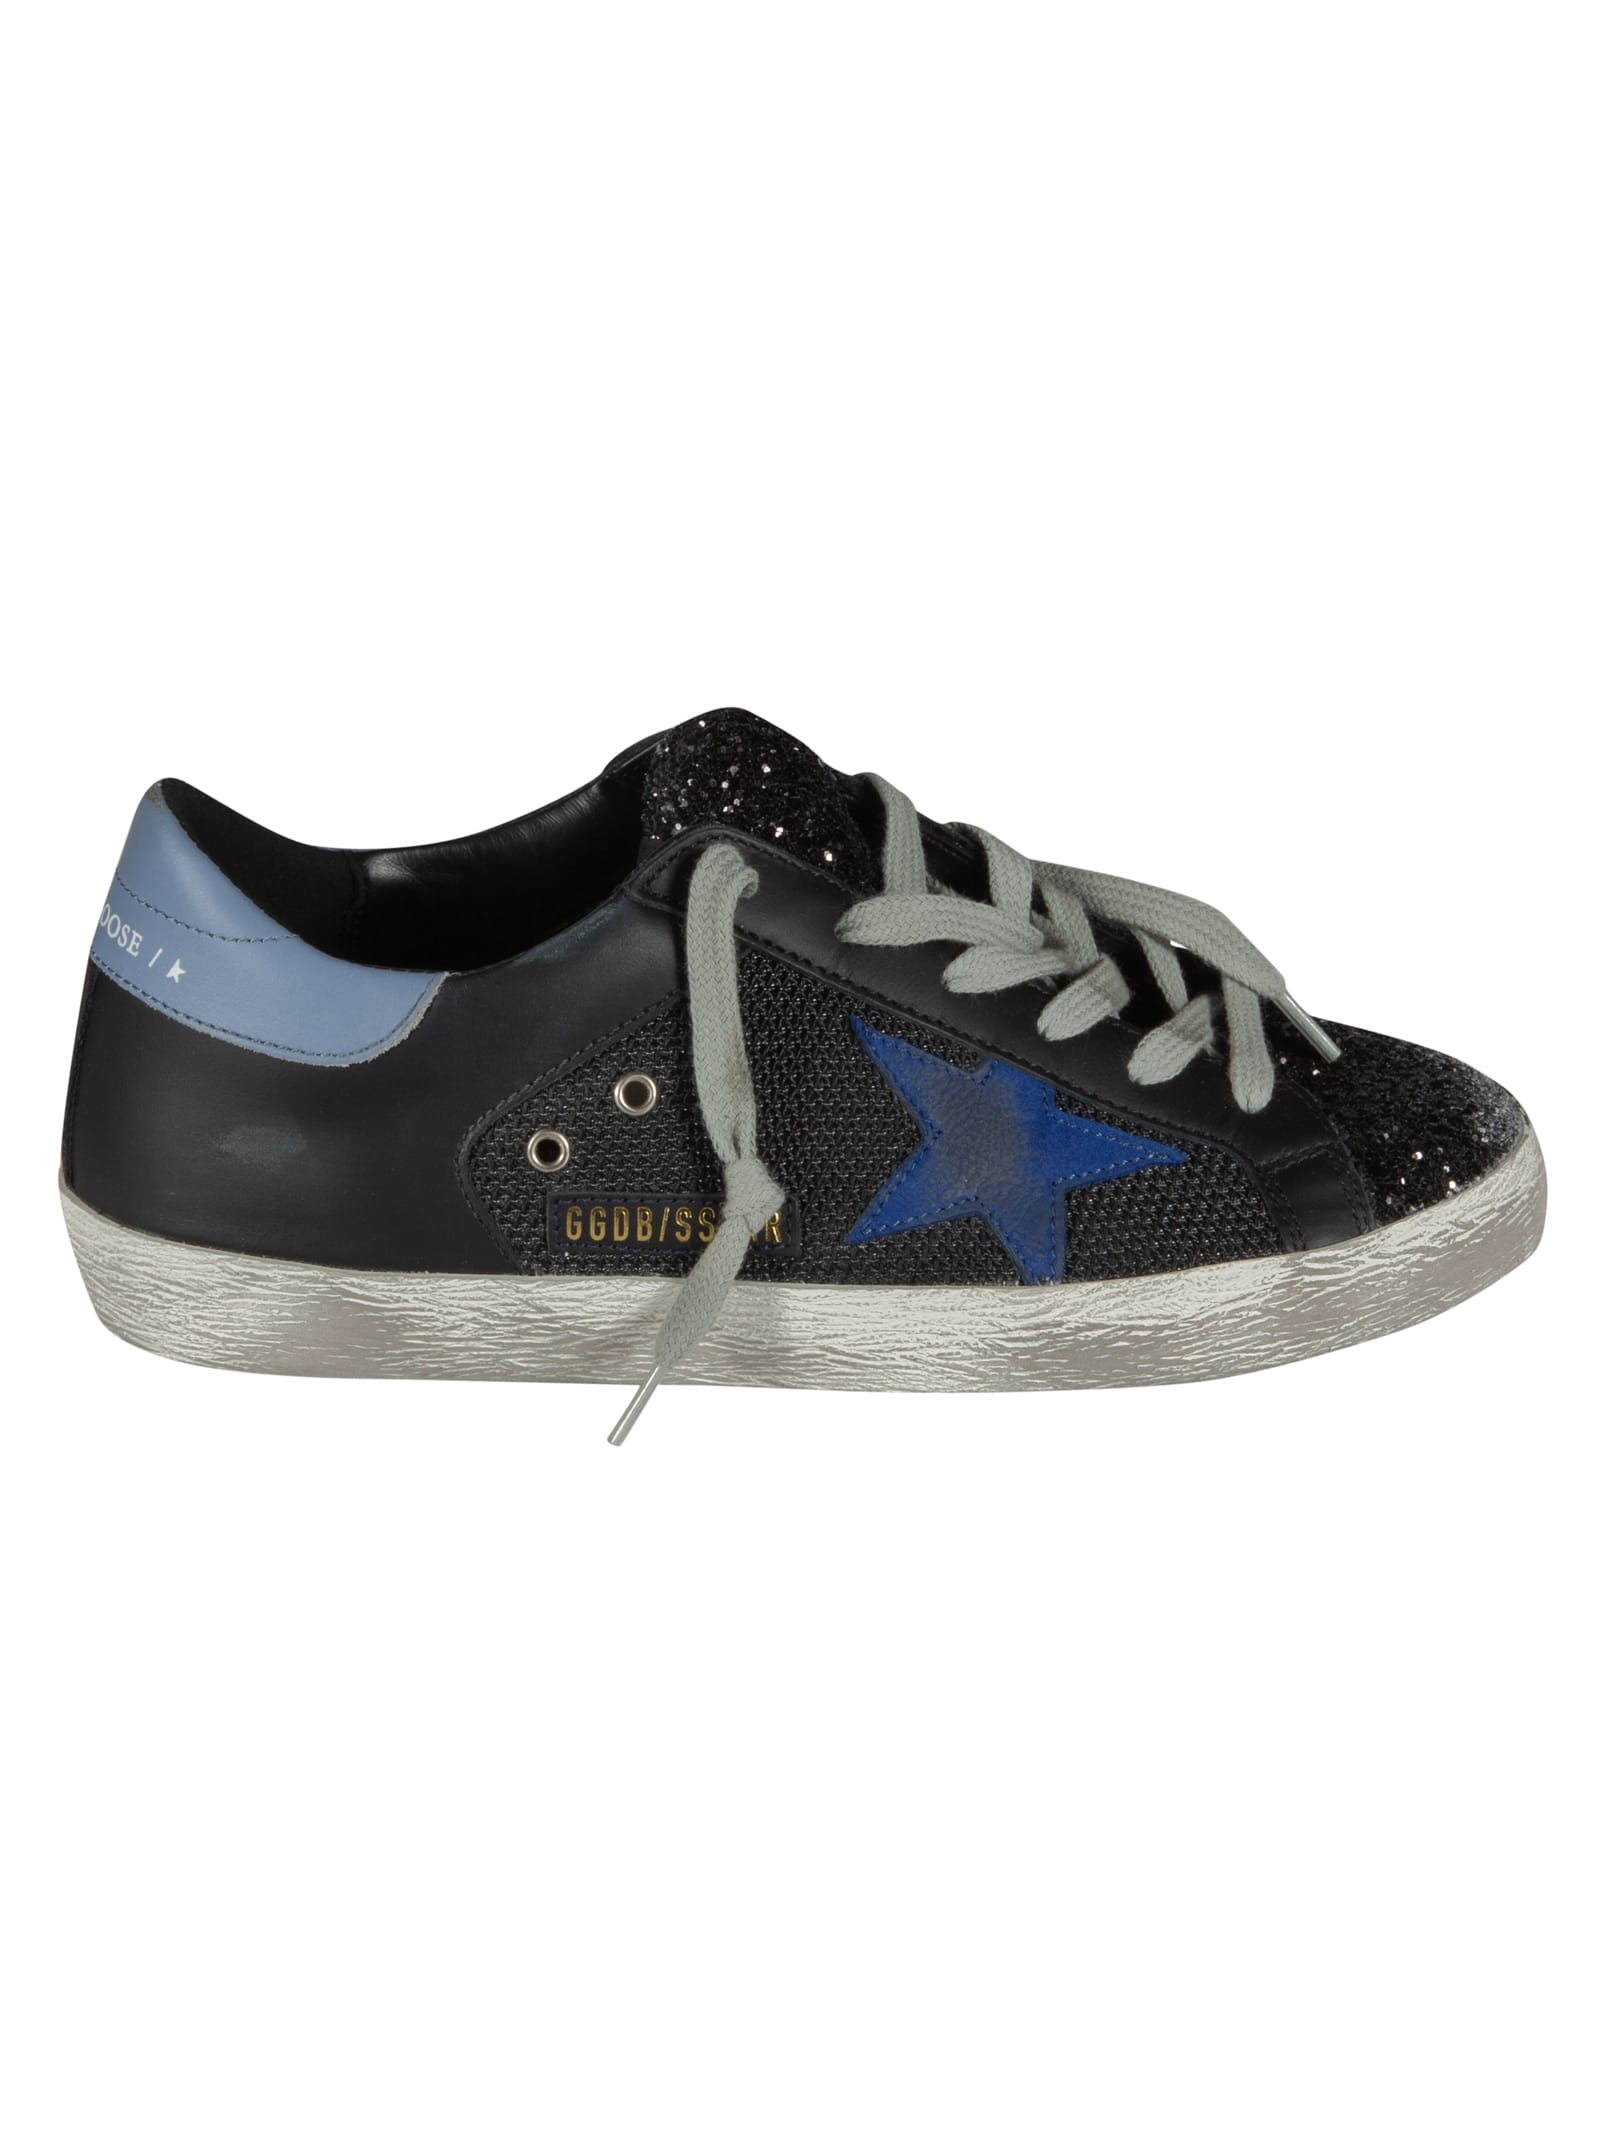 Super-star Double Quarter Sneakers from Golden Goose